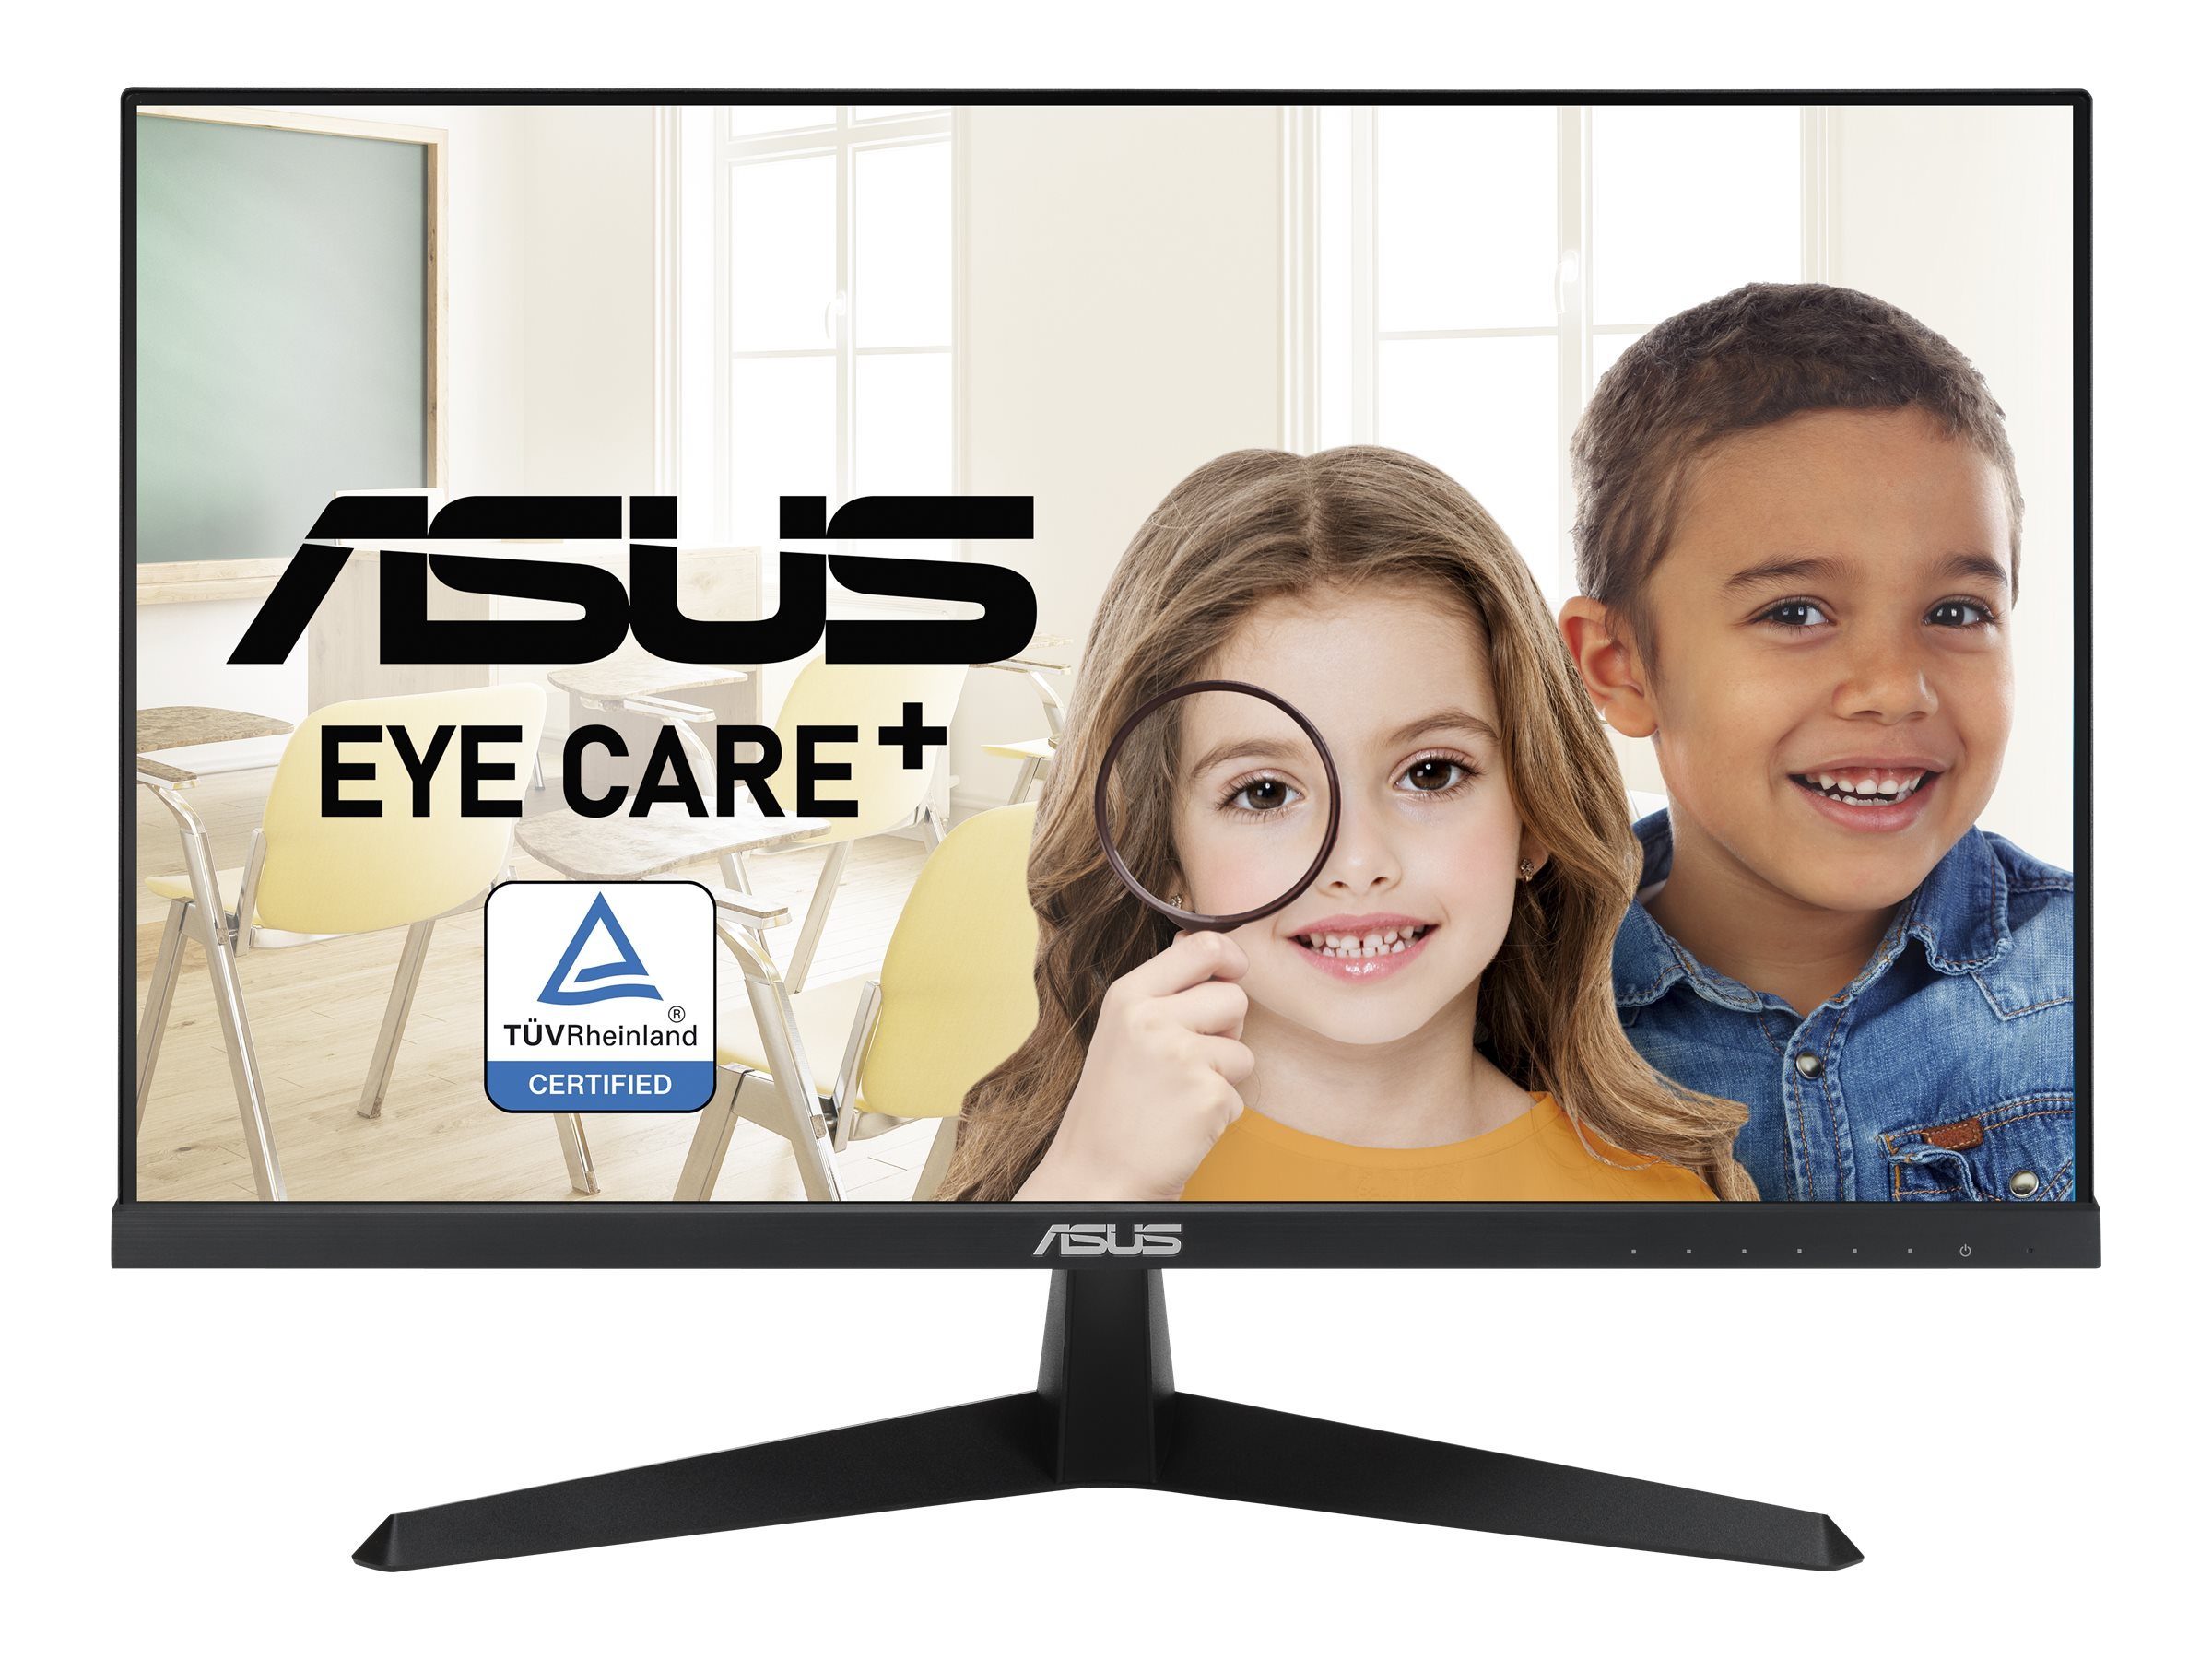 """ASUS VY249HE - LED-Monitor - 60.5 cm (23.8"""") - 1920 x 1080 Full HD (1080p)"""